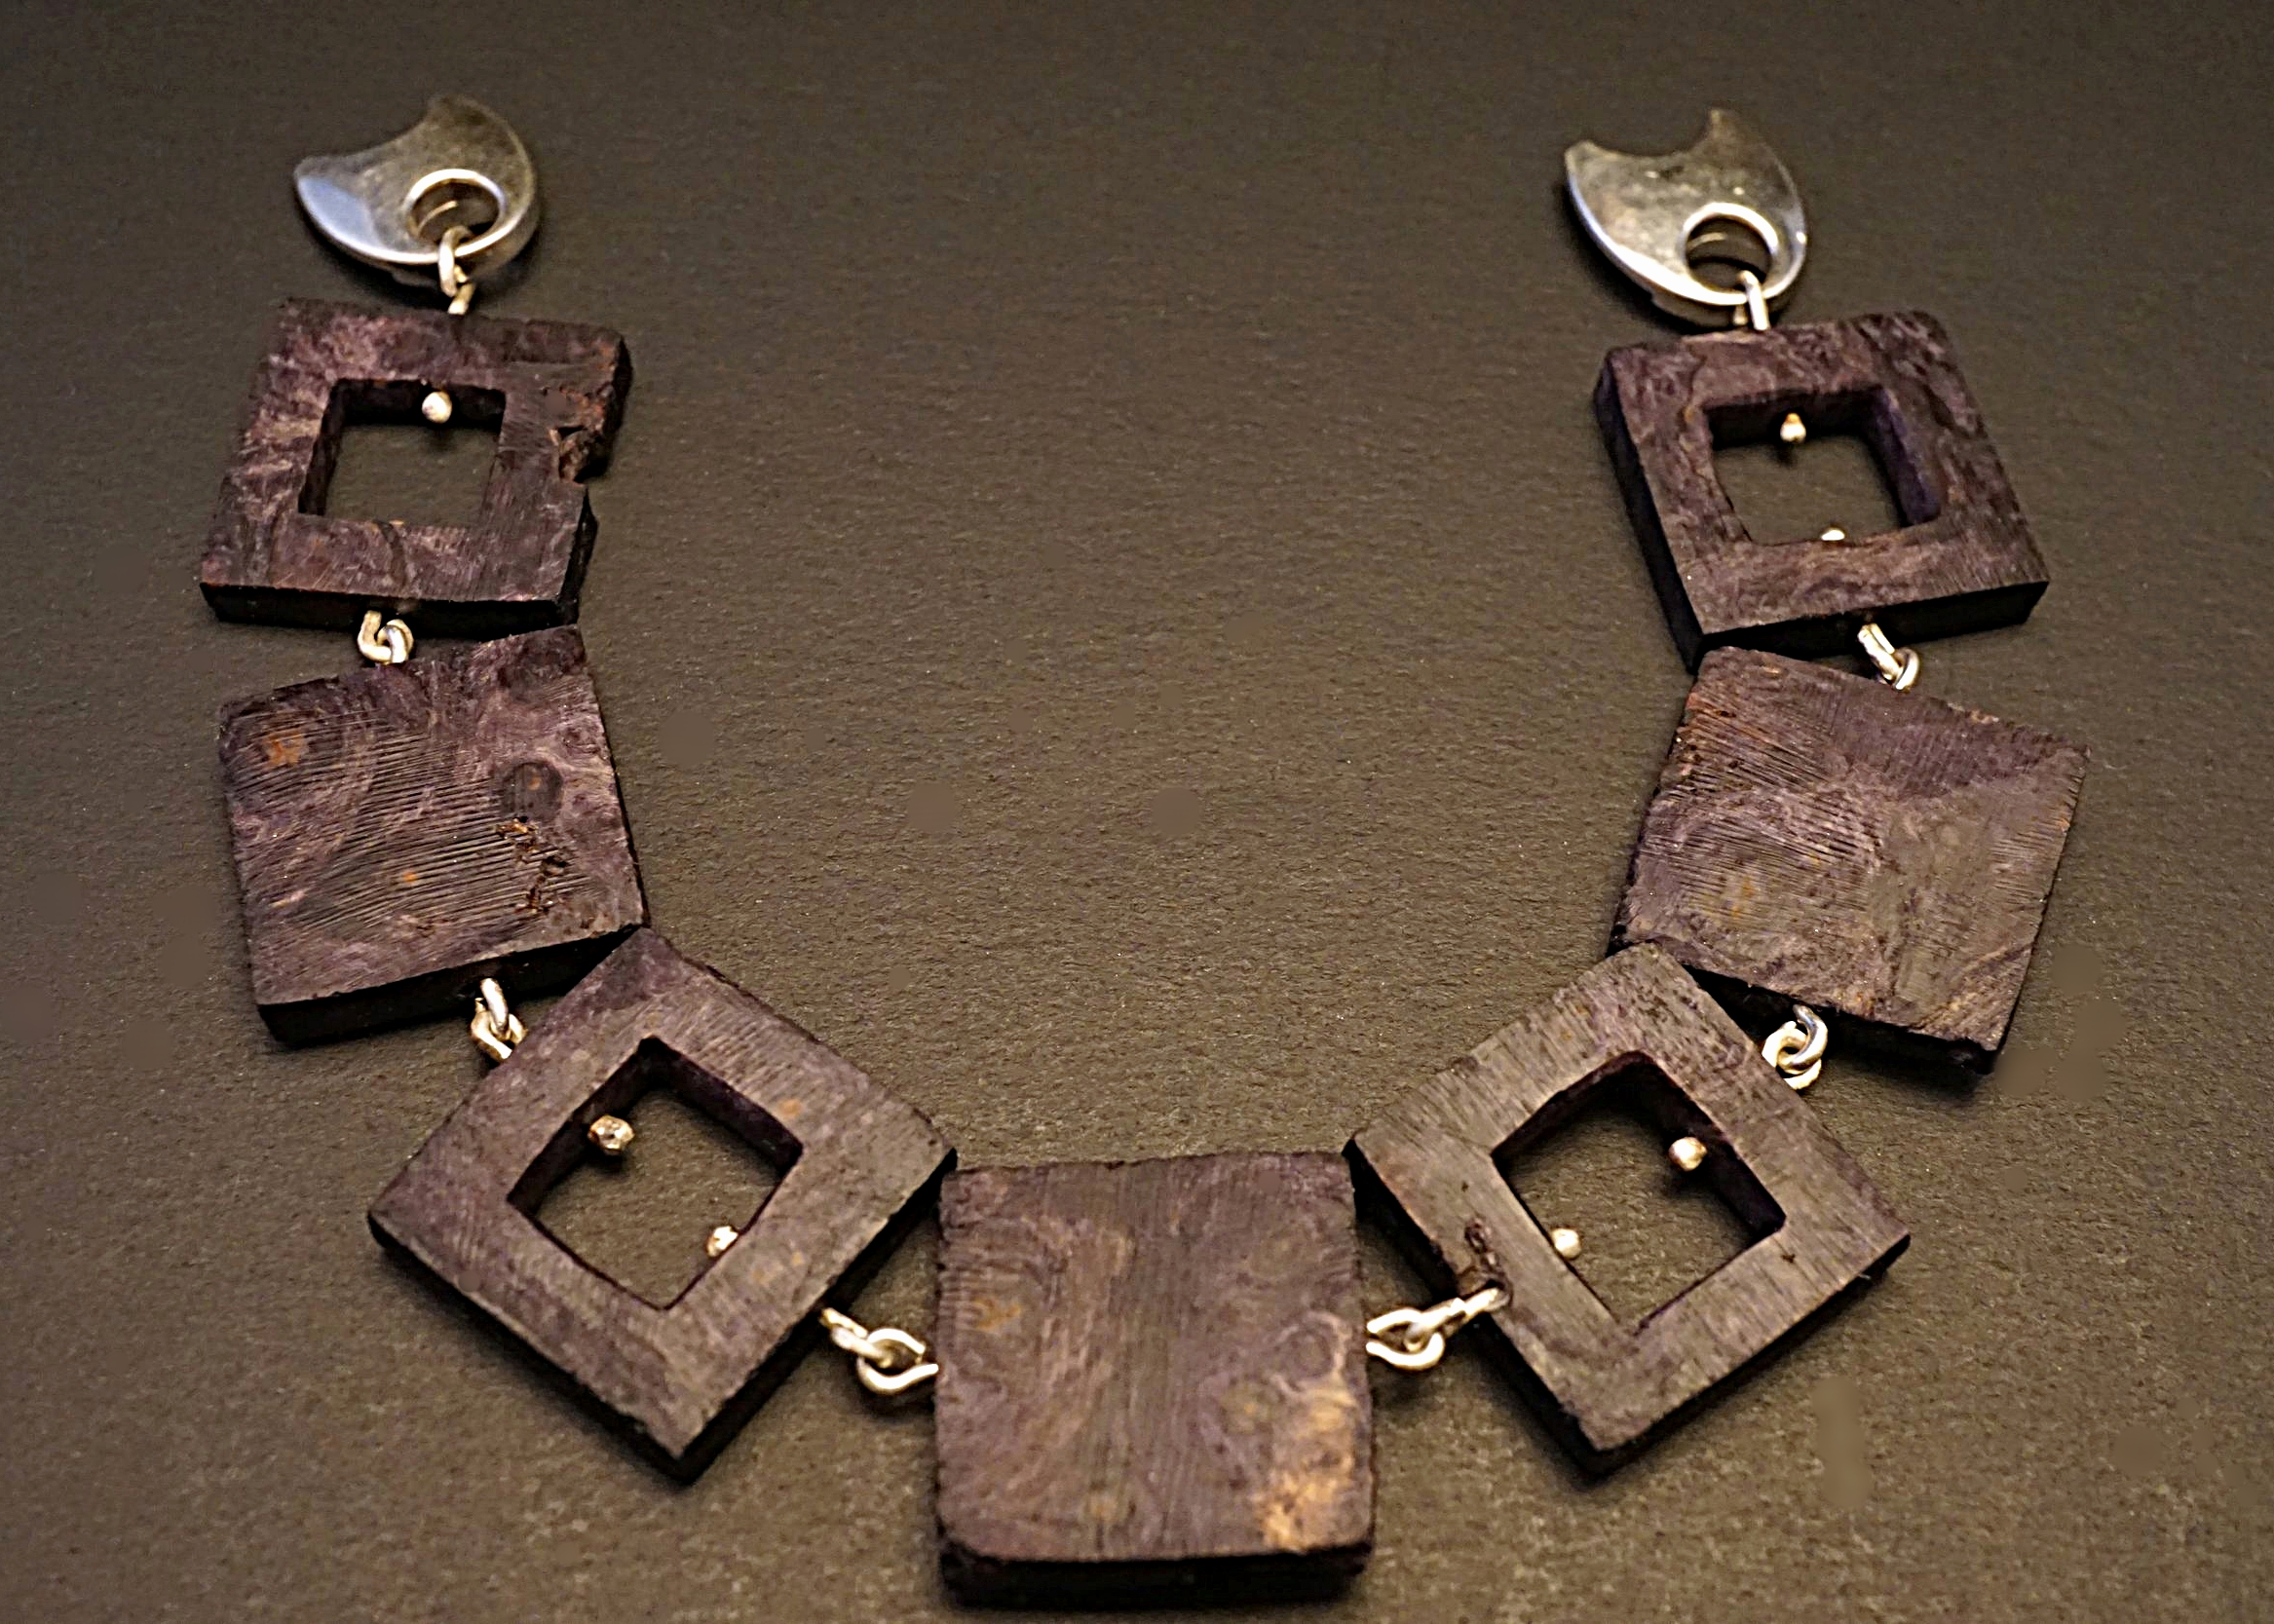 Hand carved buckeye burl links with sterling silver connectors and sterling silver magnetic clasp